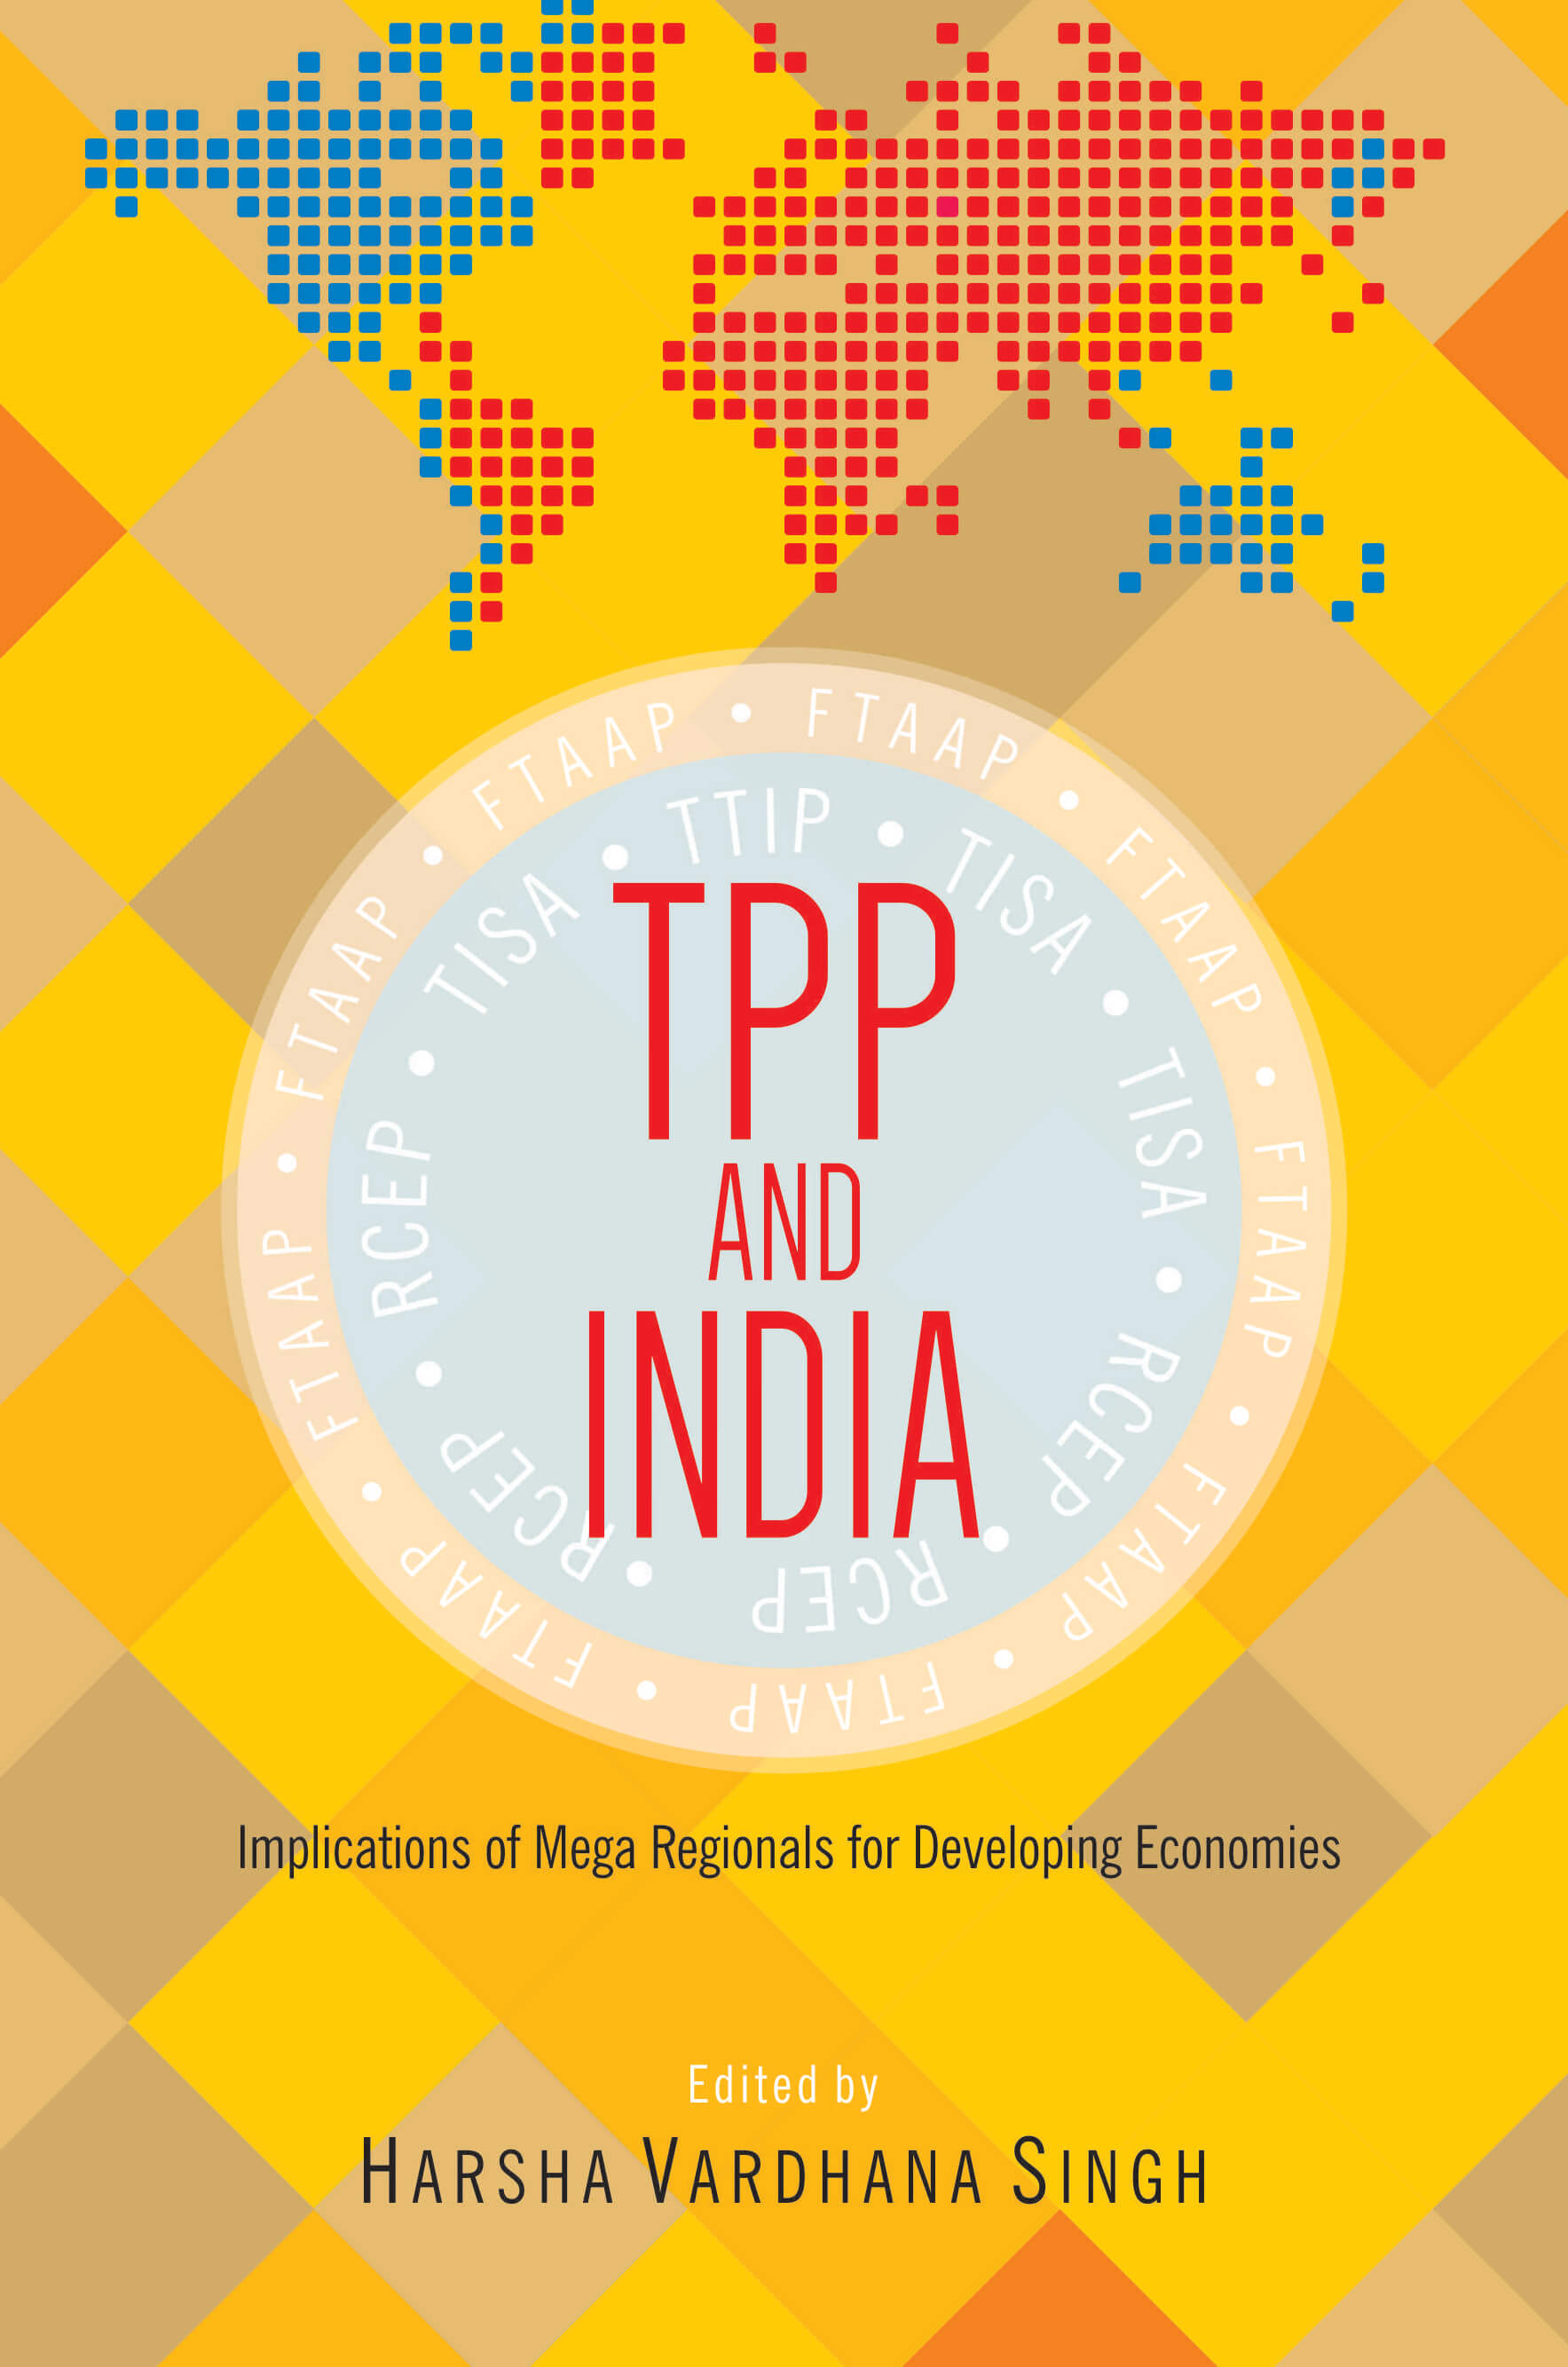 Tpp And India: Implications Of Mega-Regionals For Emerging Economies Implications Of Mega-Regionals For Developing Economies